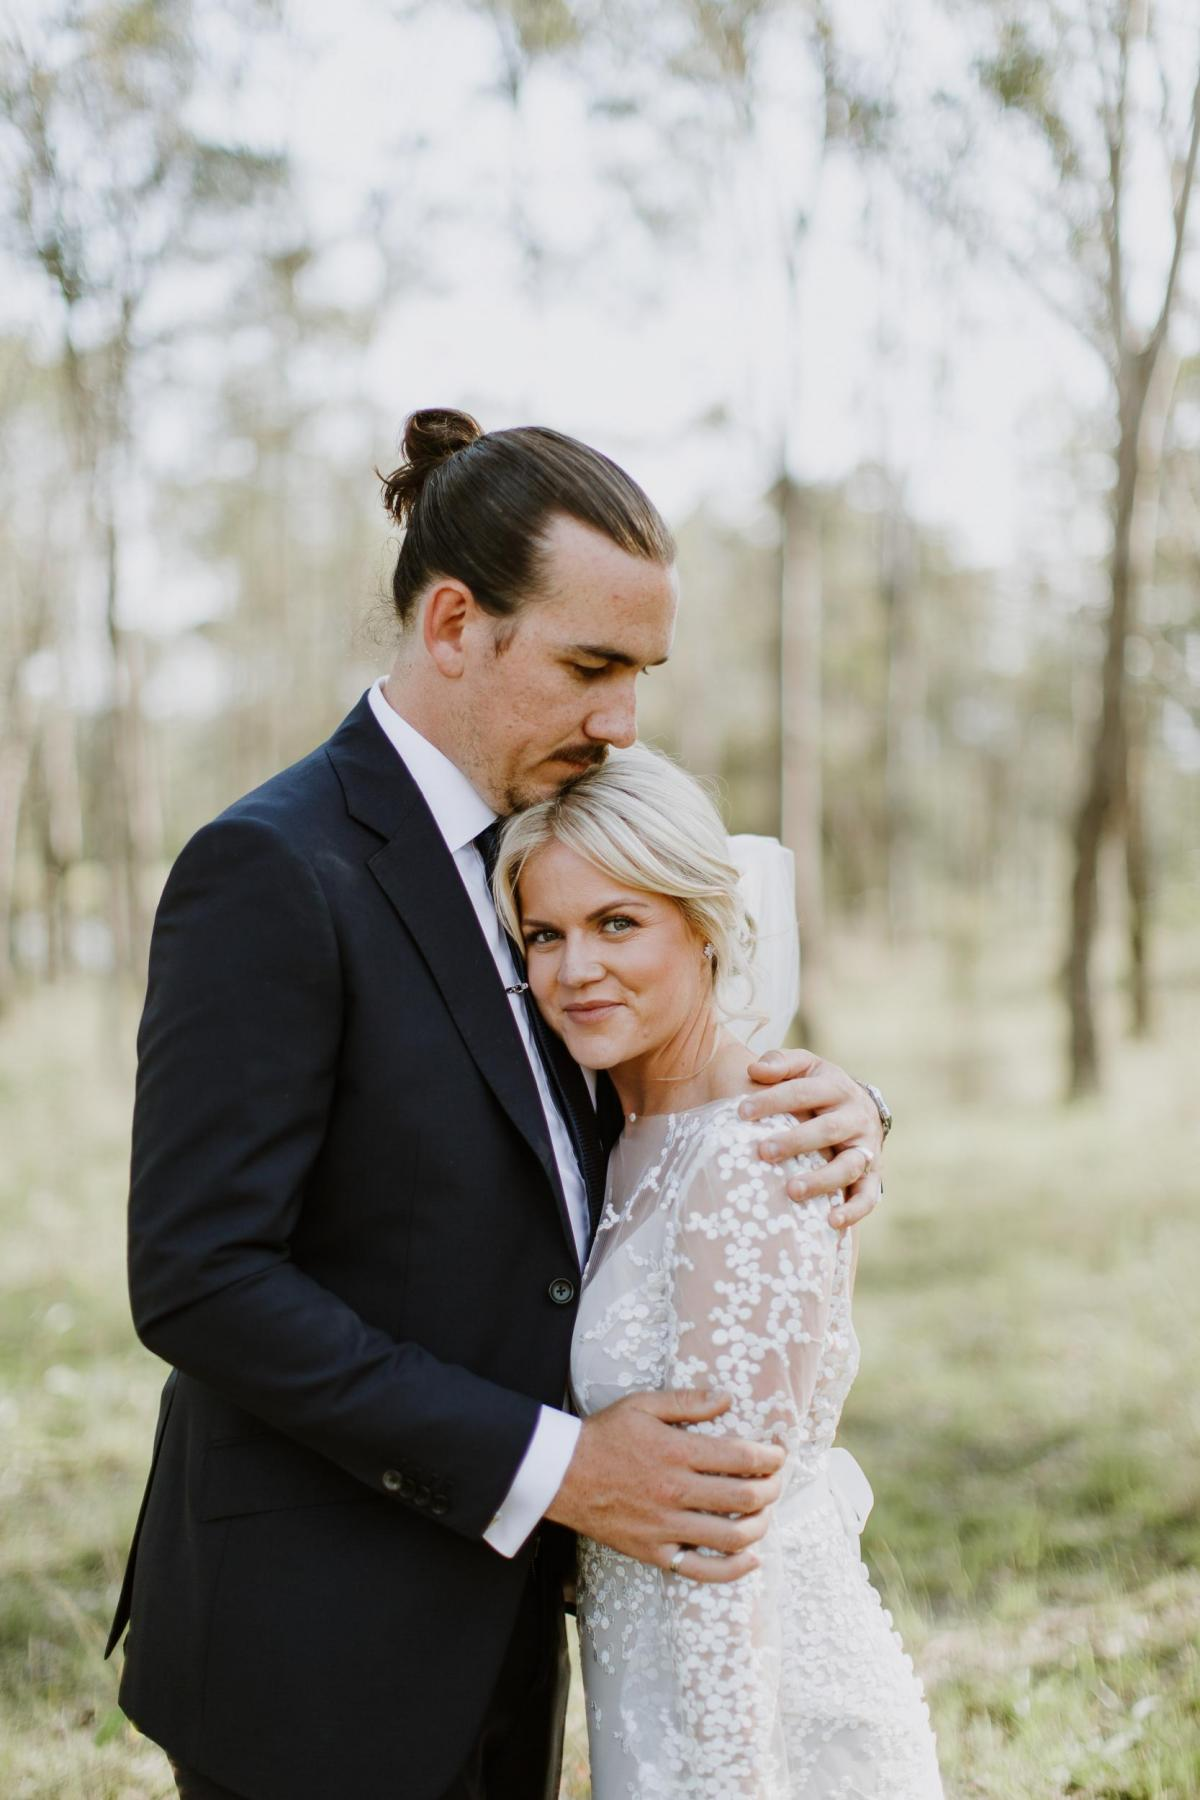 Read all about our real bride's wedding in this blog. She wore the Bespoke Pascale wedding dress by Karen Willis Holmes.